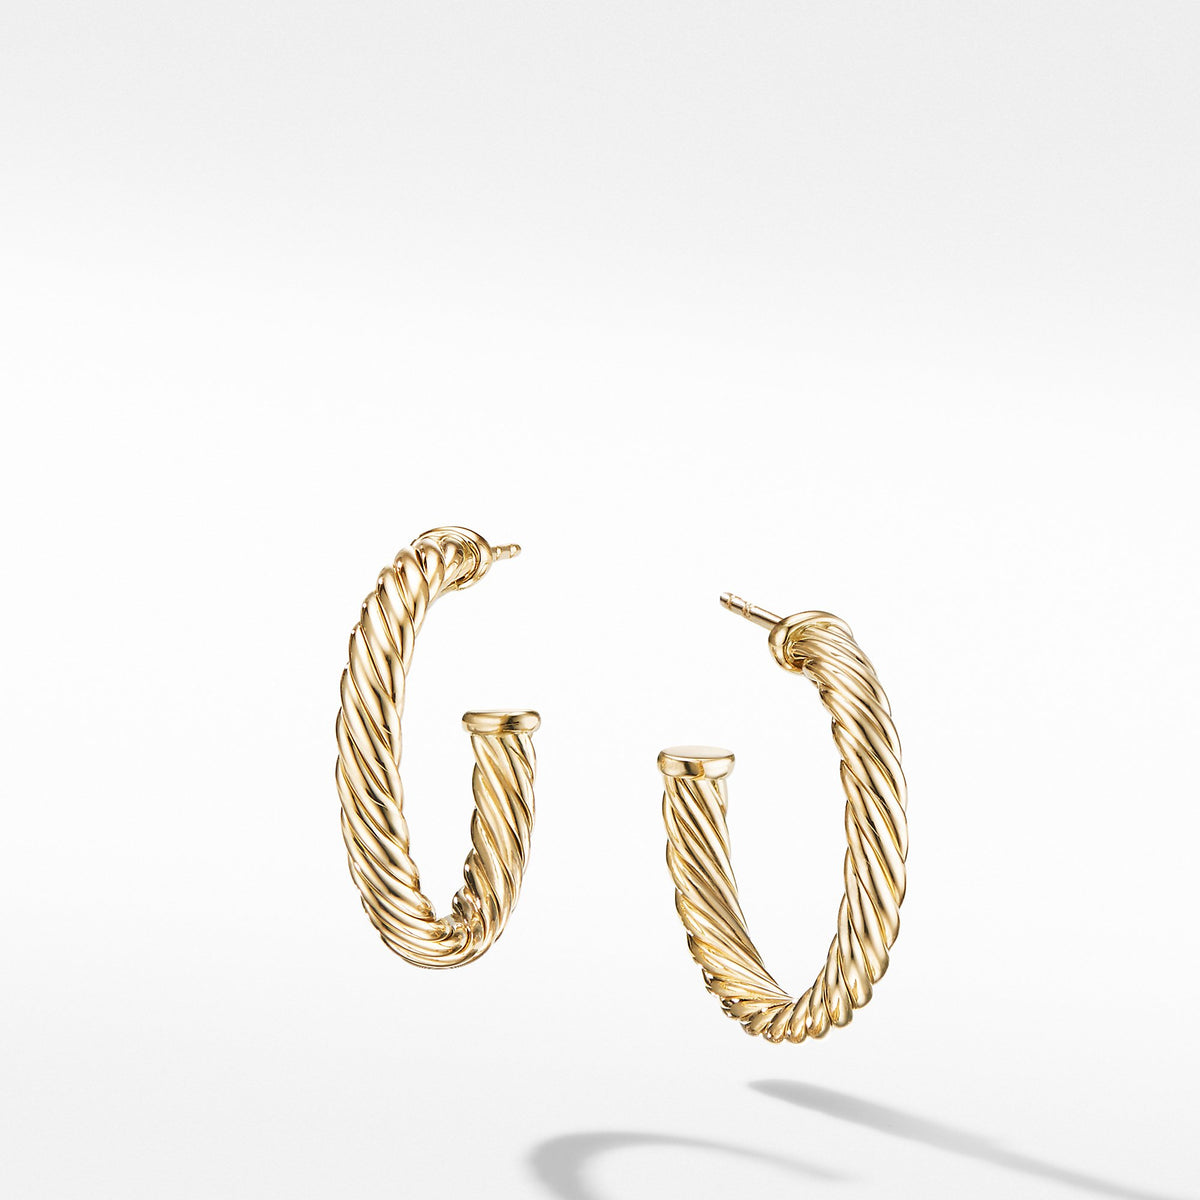 Small Cablespira Hoop Earrings in 18K Yellow Gold